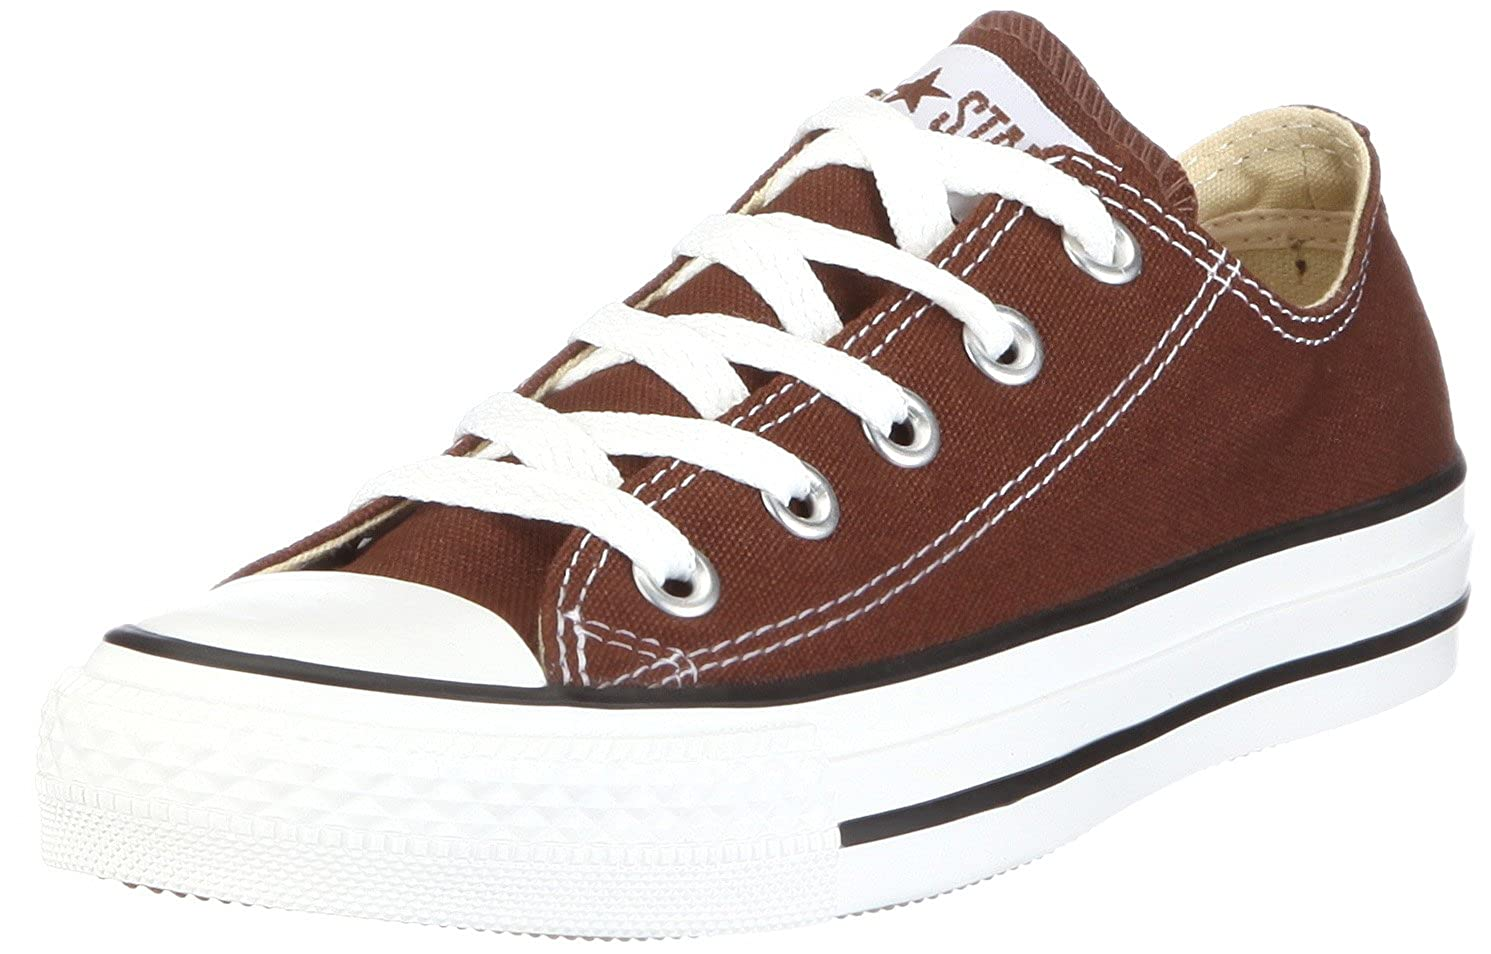 TALLA 37 EU. Converse AS Ox Can Chocolate, Zapatillas Unisex